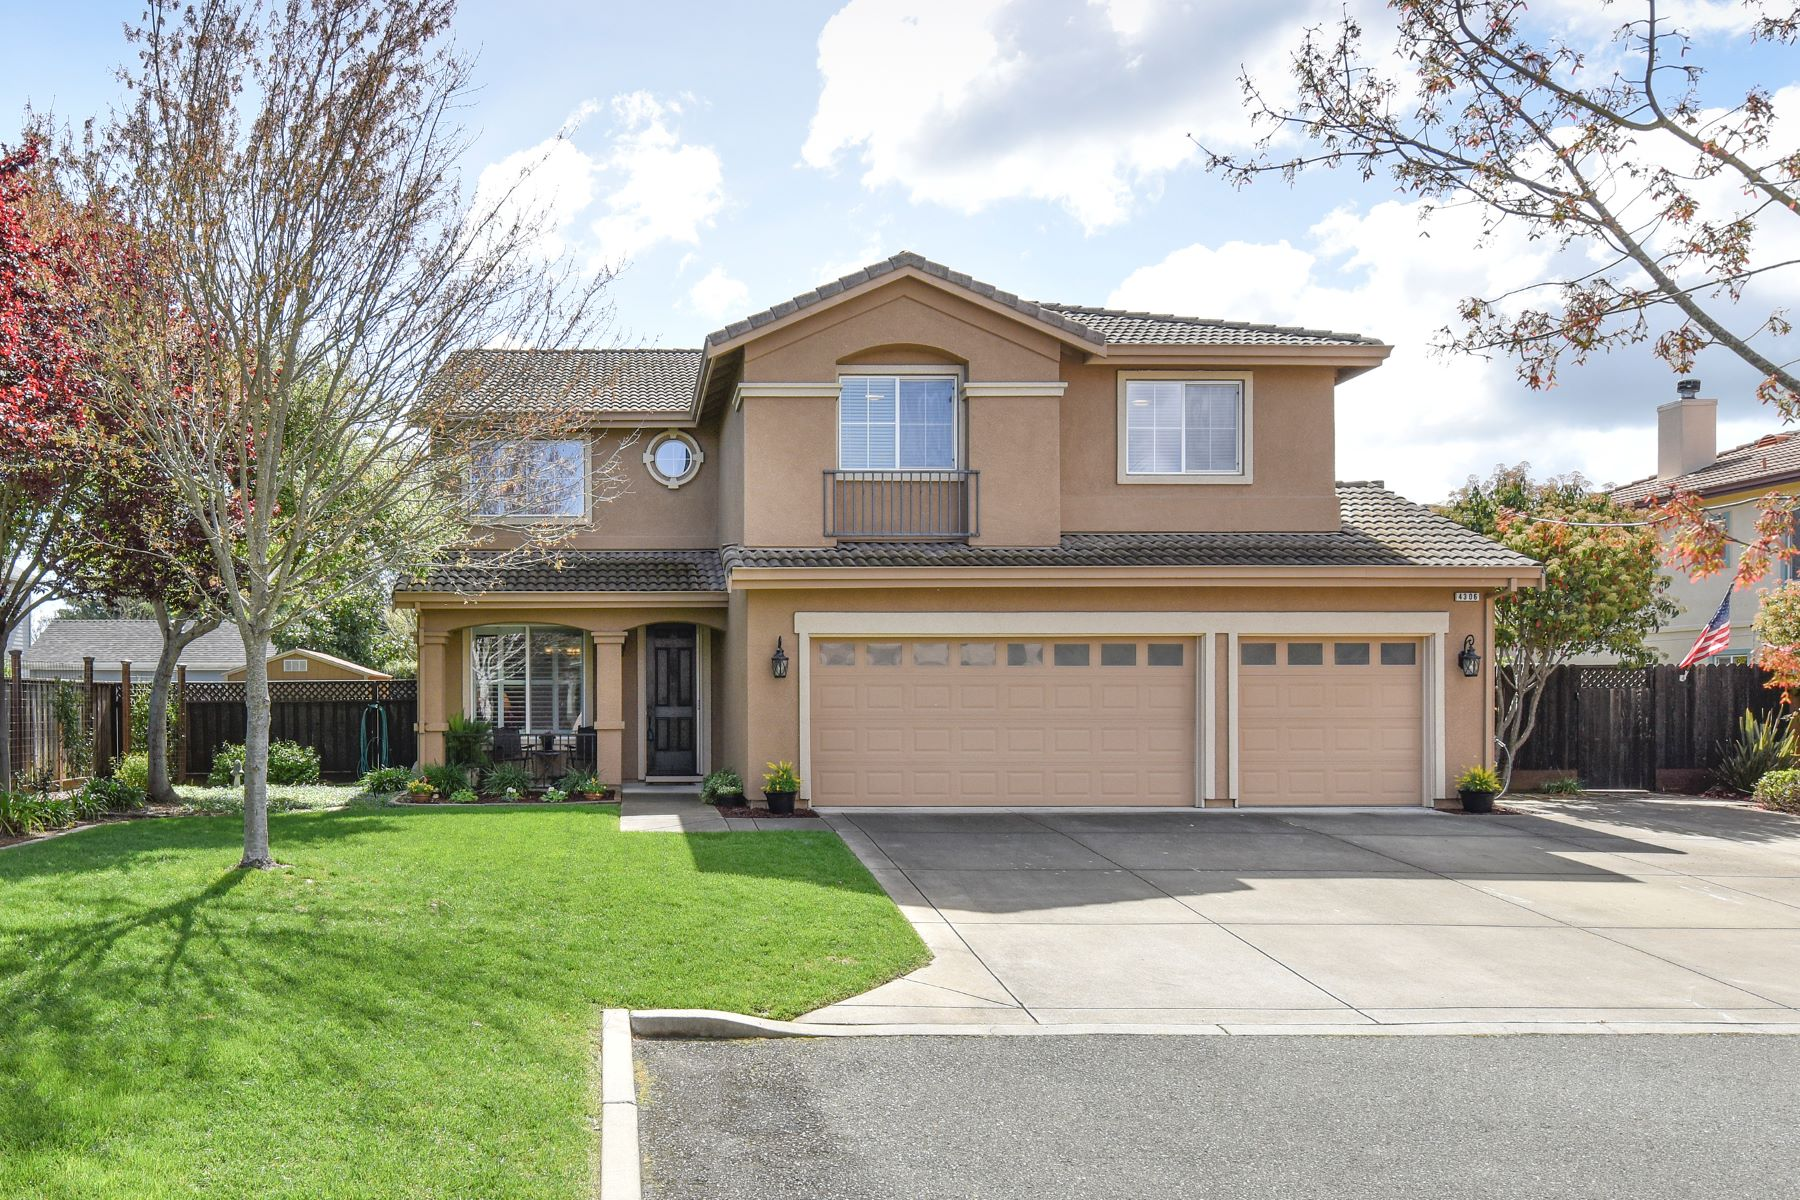 Single Family Home for Sale at Bright and Spacious Home Featuring Cathedral Ceilings 4306 Kingsford Drive Napa, California 94558 United States